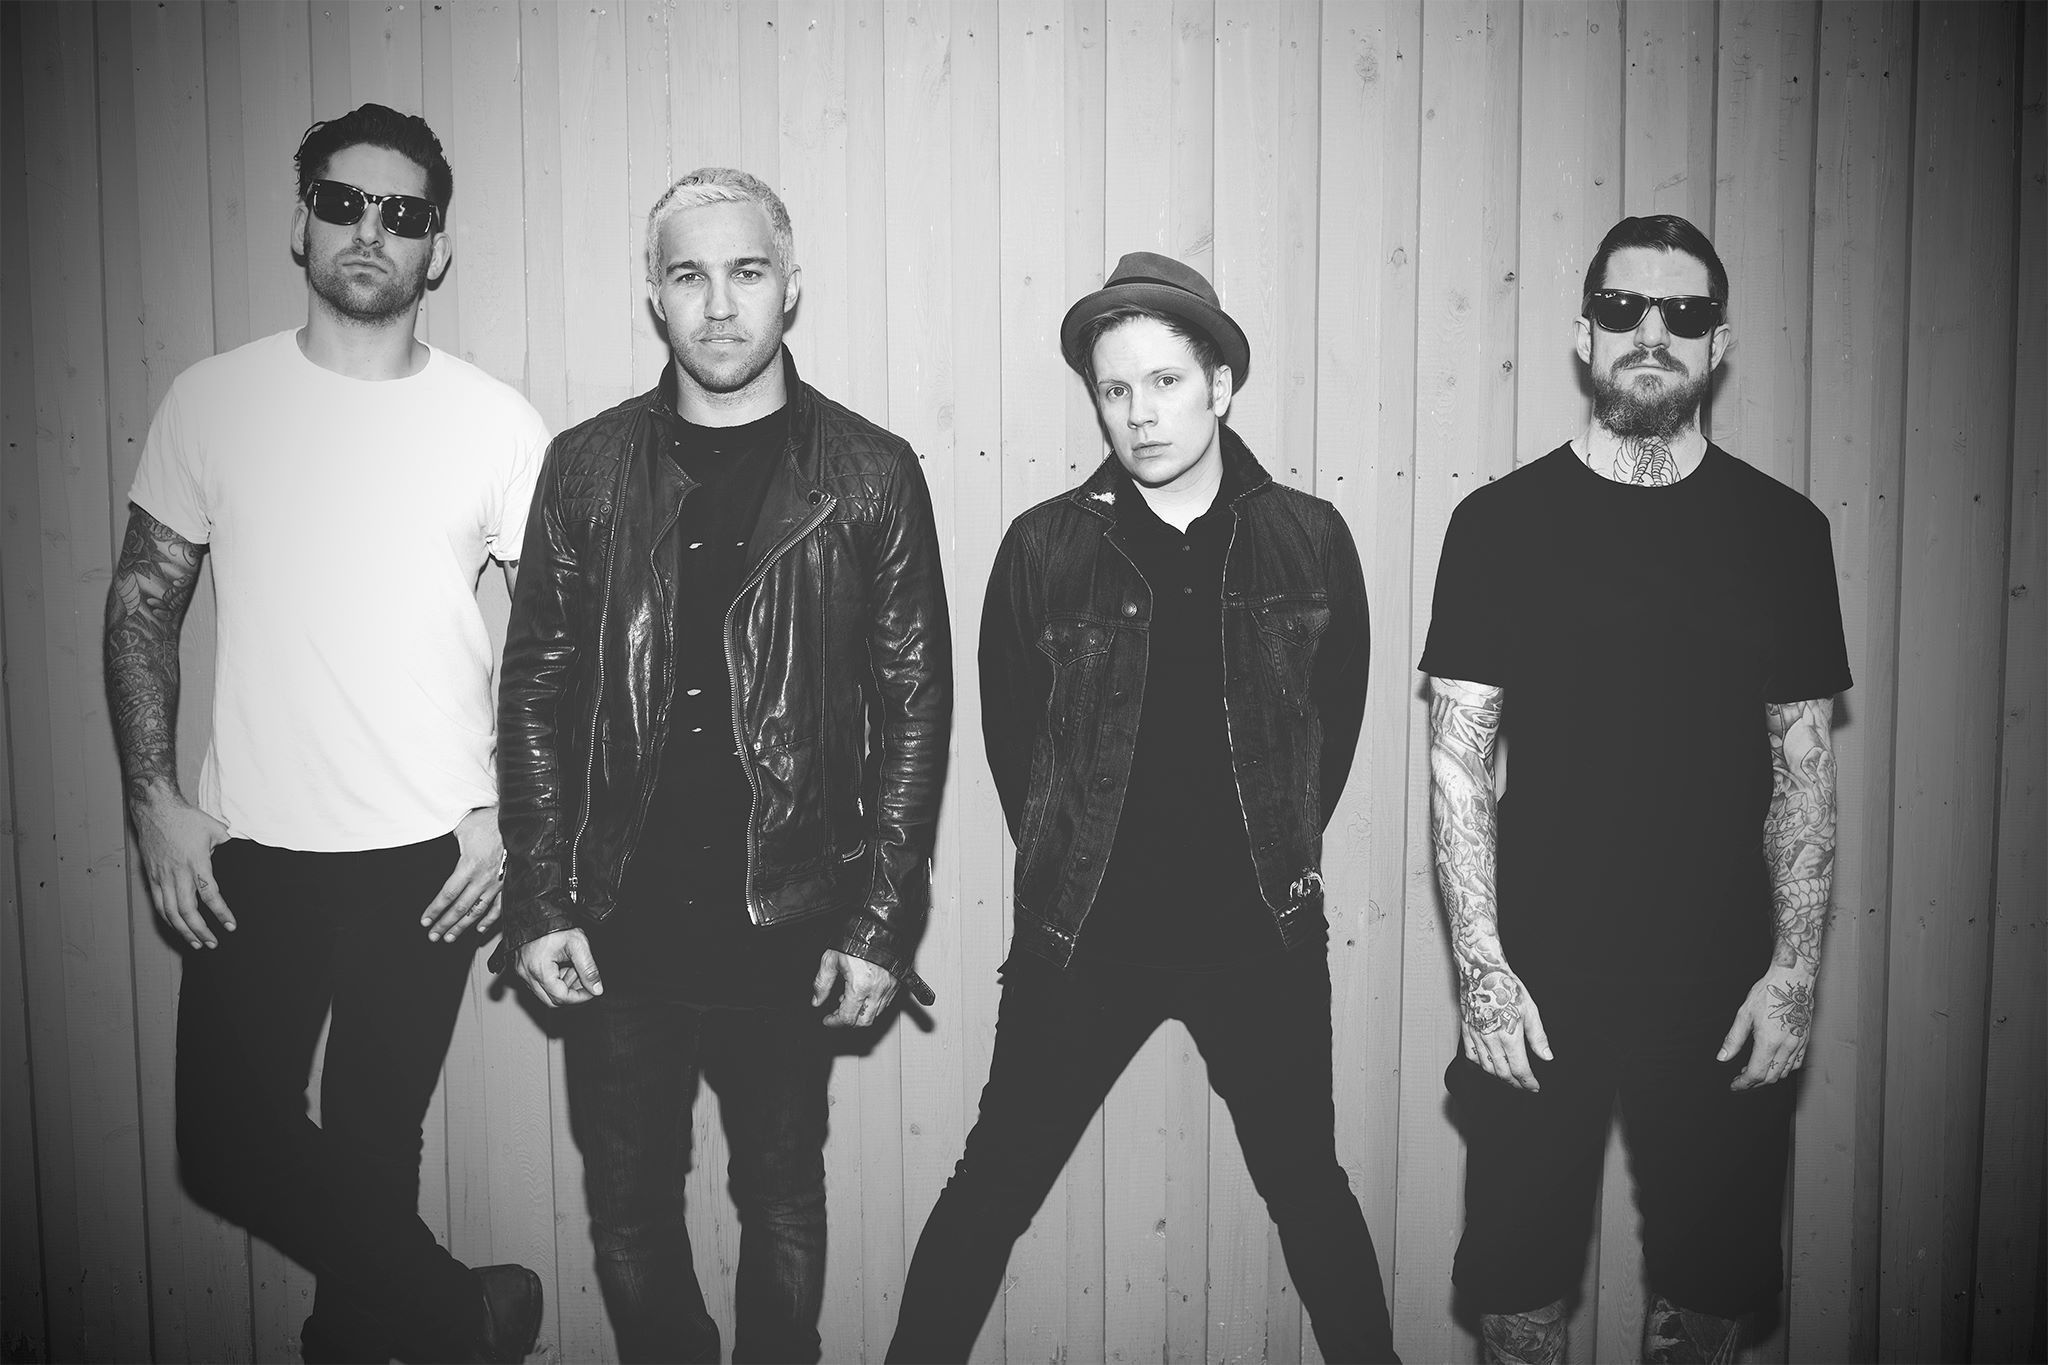 Full size fall out boy backround by Bruce Bishop (2016-04-24)